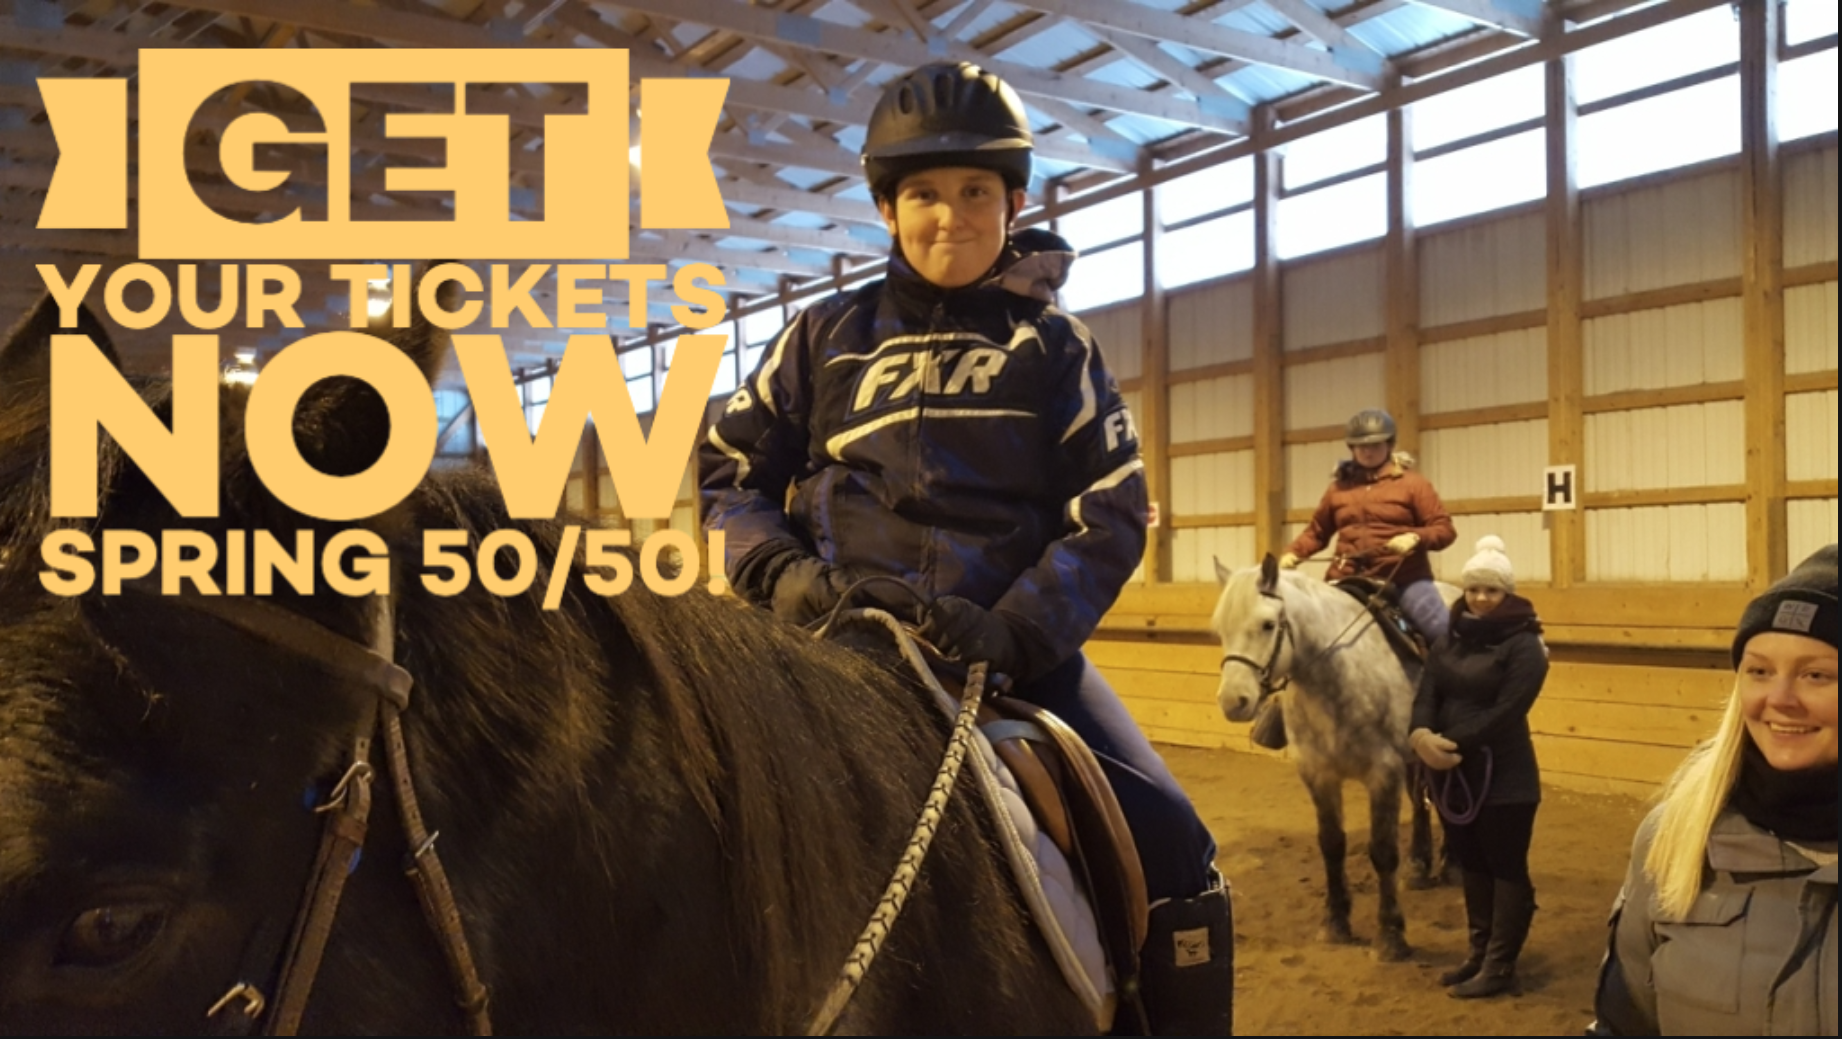 Student riding horse announcing 50/50 raffle